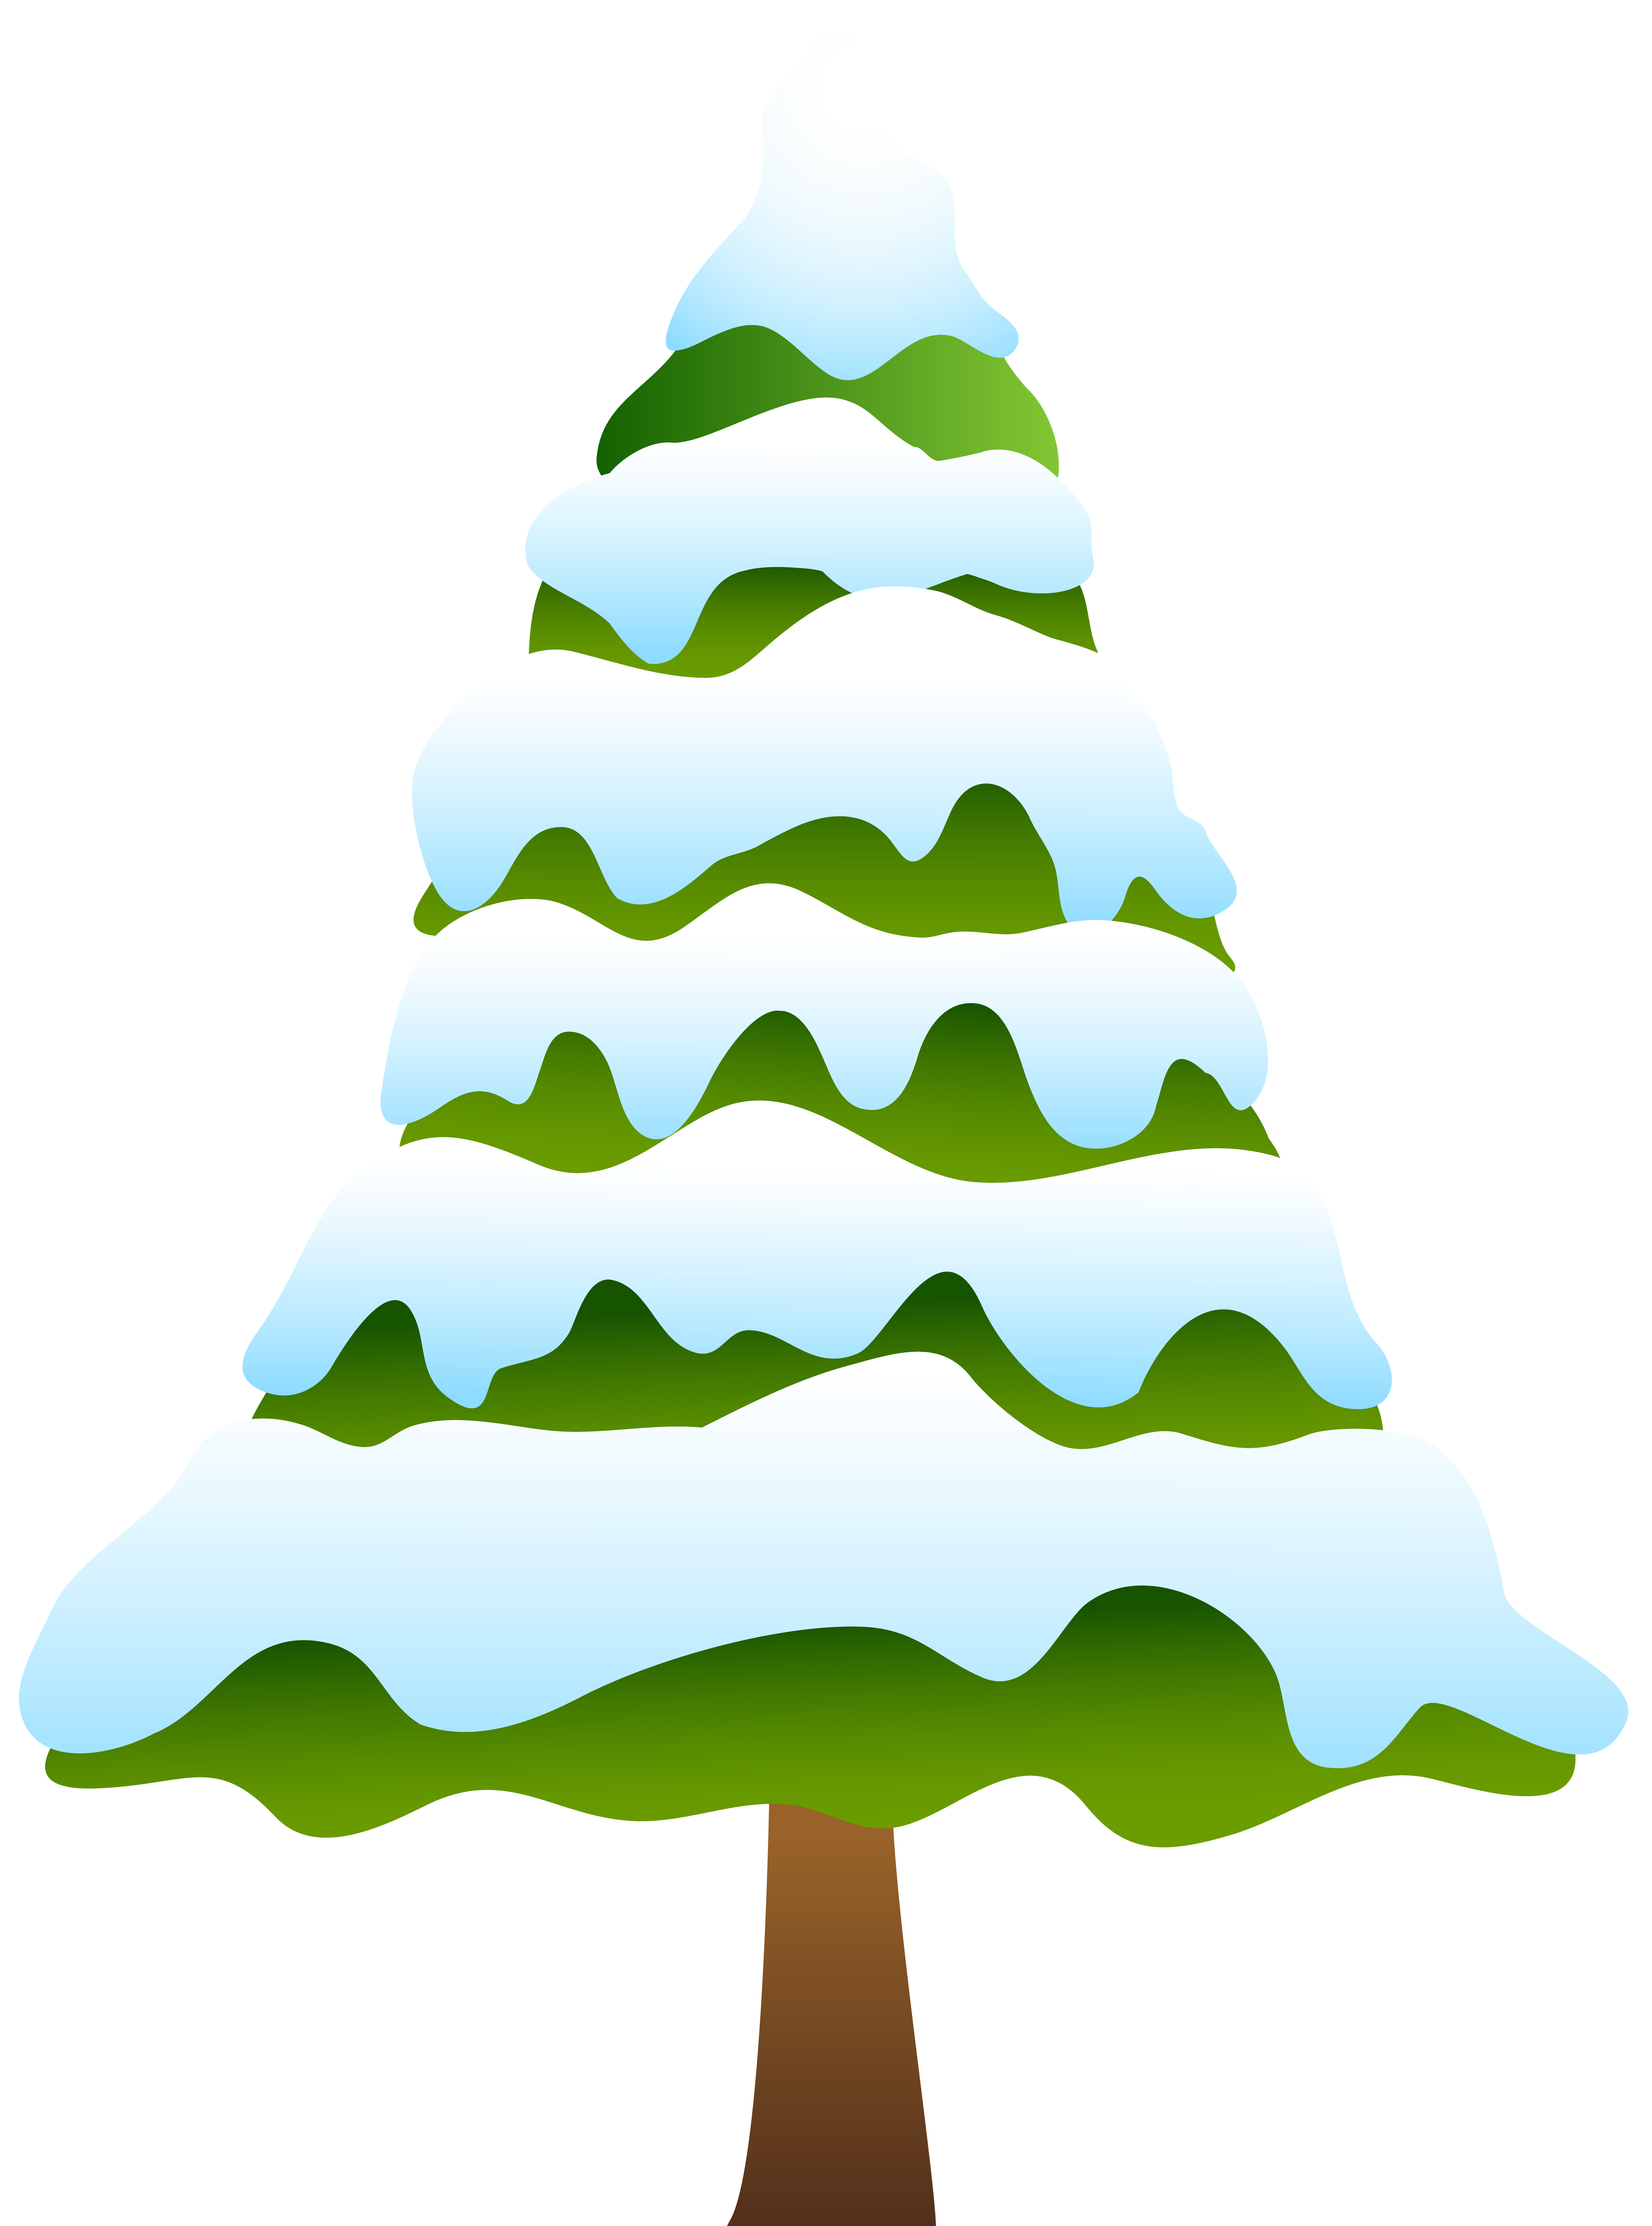 Free pine tree clipart graphic free library Snowy Pine Tree Clip Art PNG Image | Gallery Yopriceville - High ... graphic free library